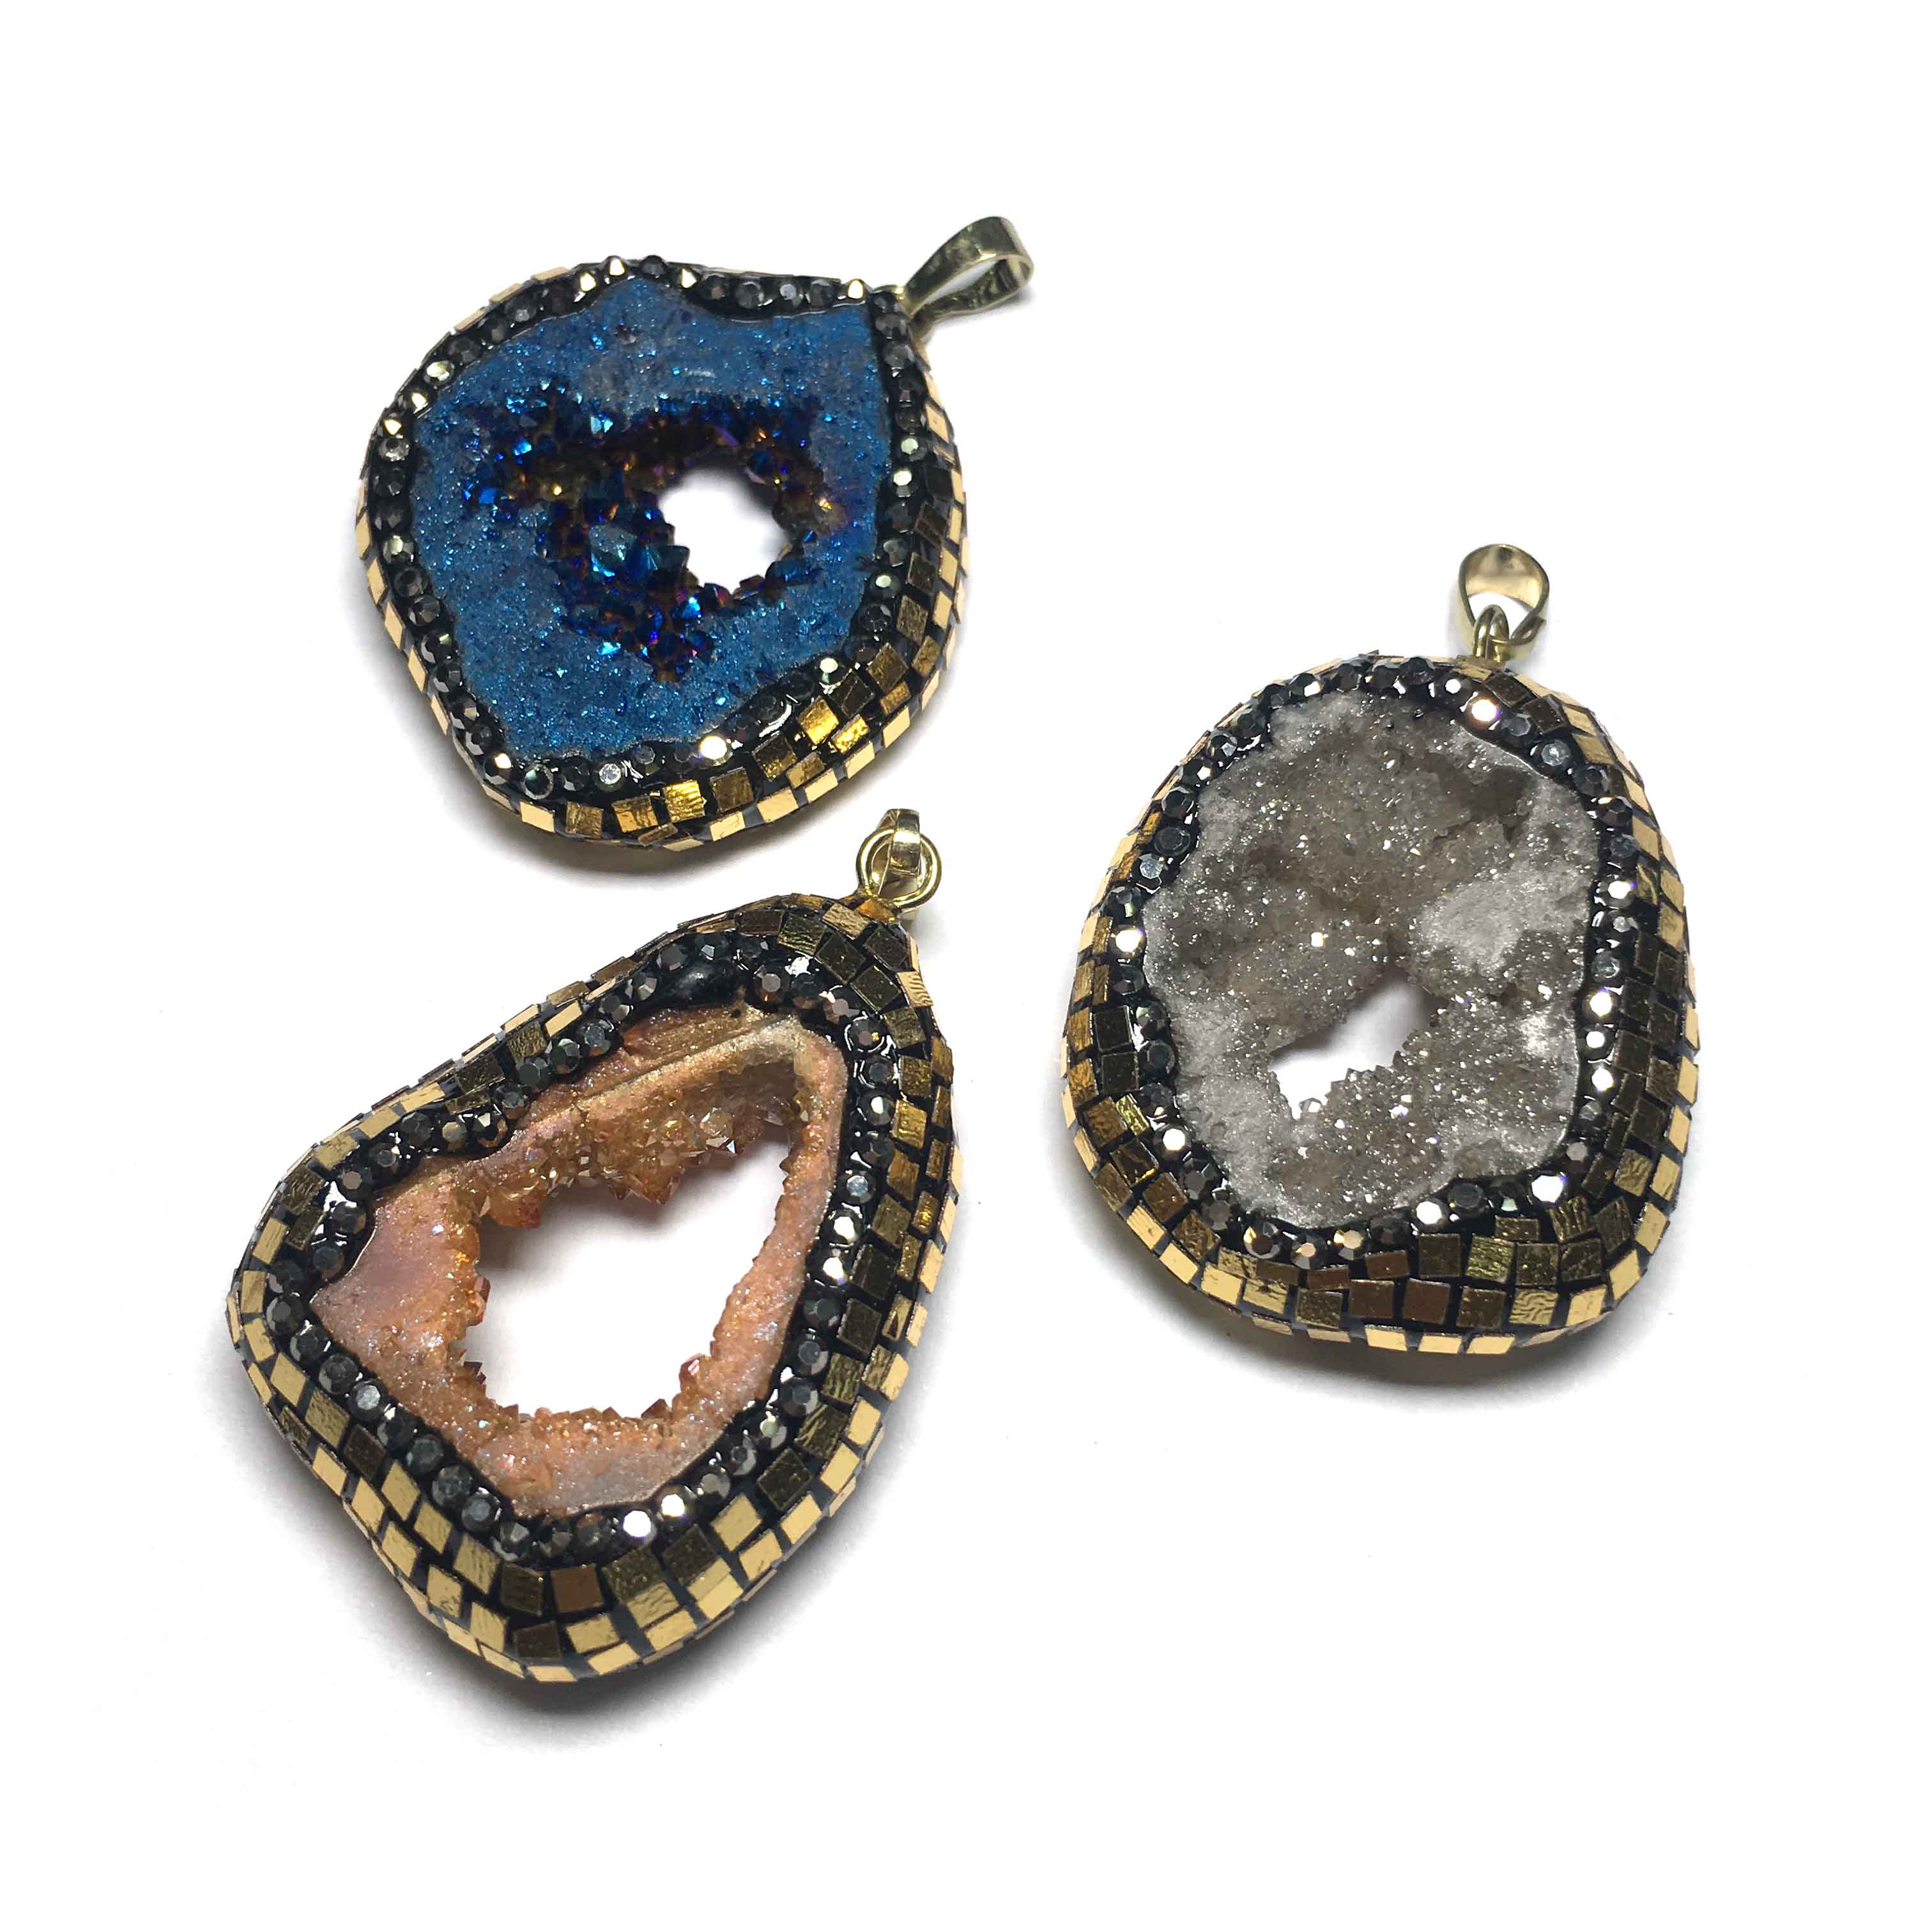 Fashion Pendants Neckalce Men Jewelry Single Hole Natural Gem Stone Pendants for Jewelry Making Supplies Size 20x35mm 25x35mm in Pendant Necklaces from Jewelry Accessories